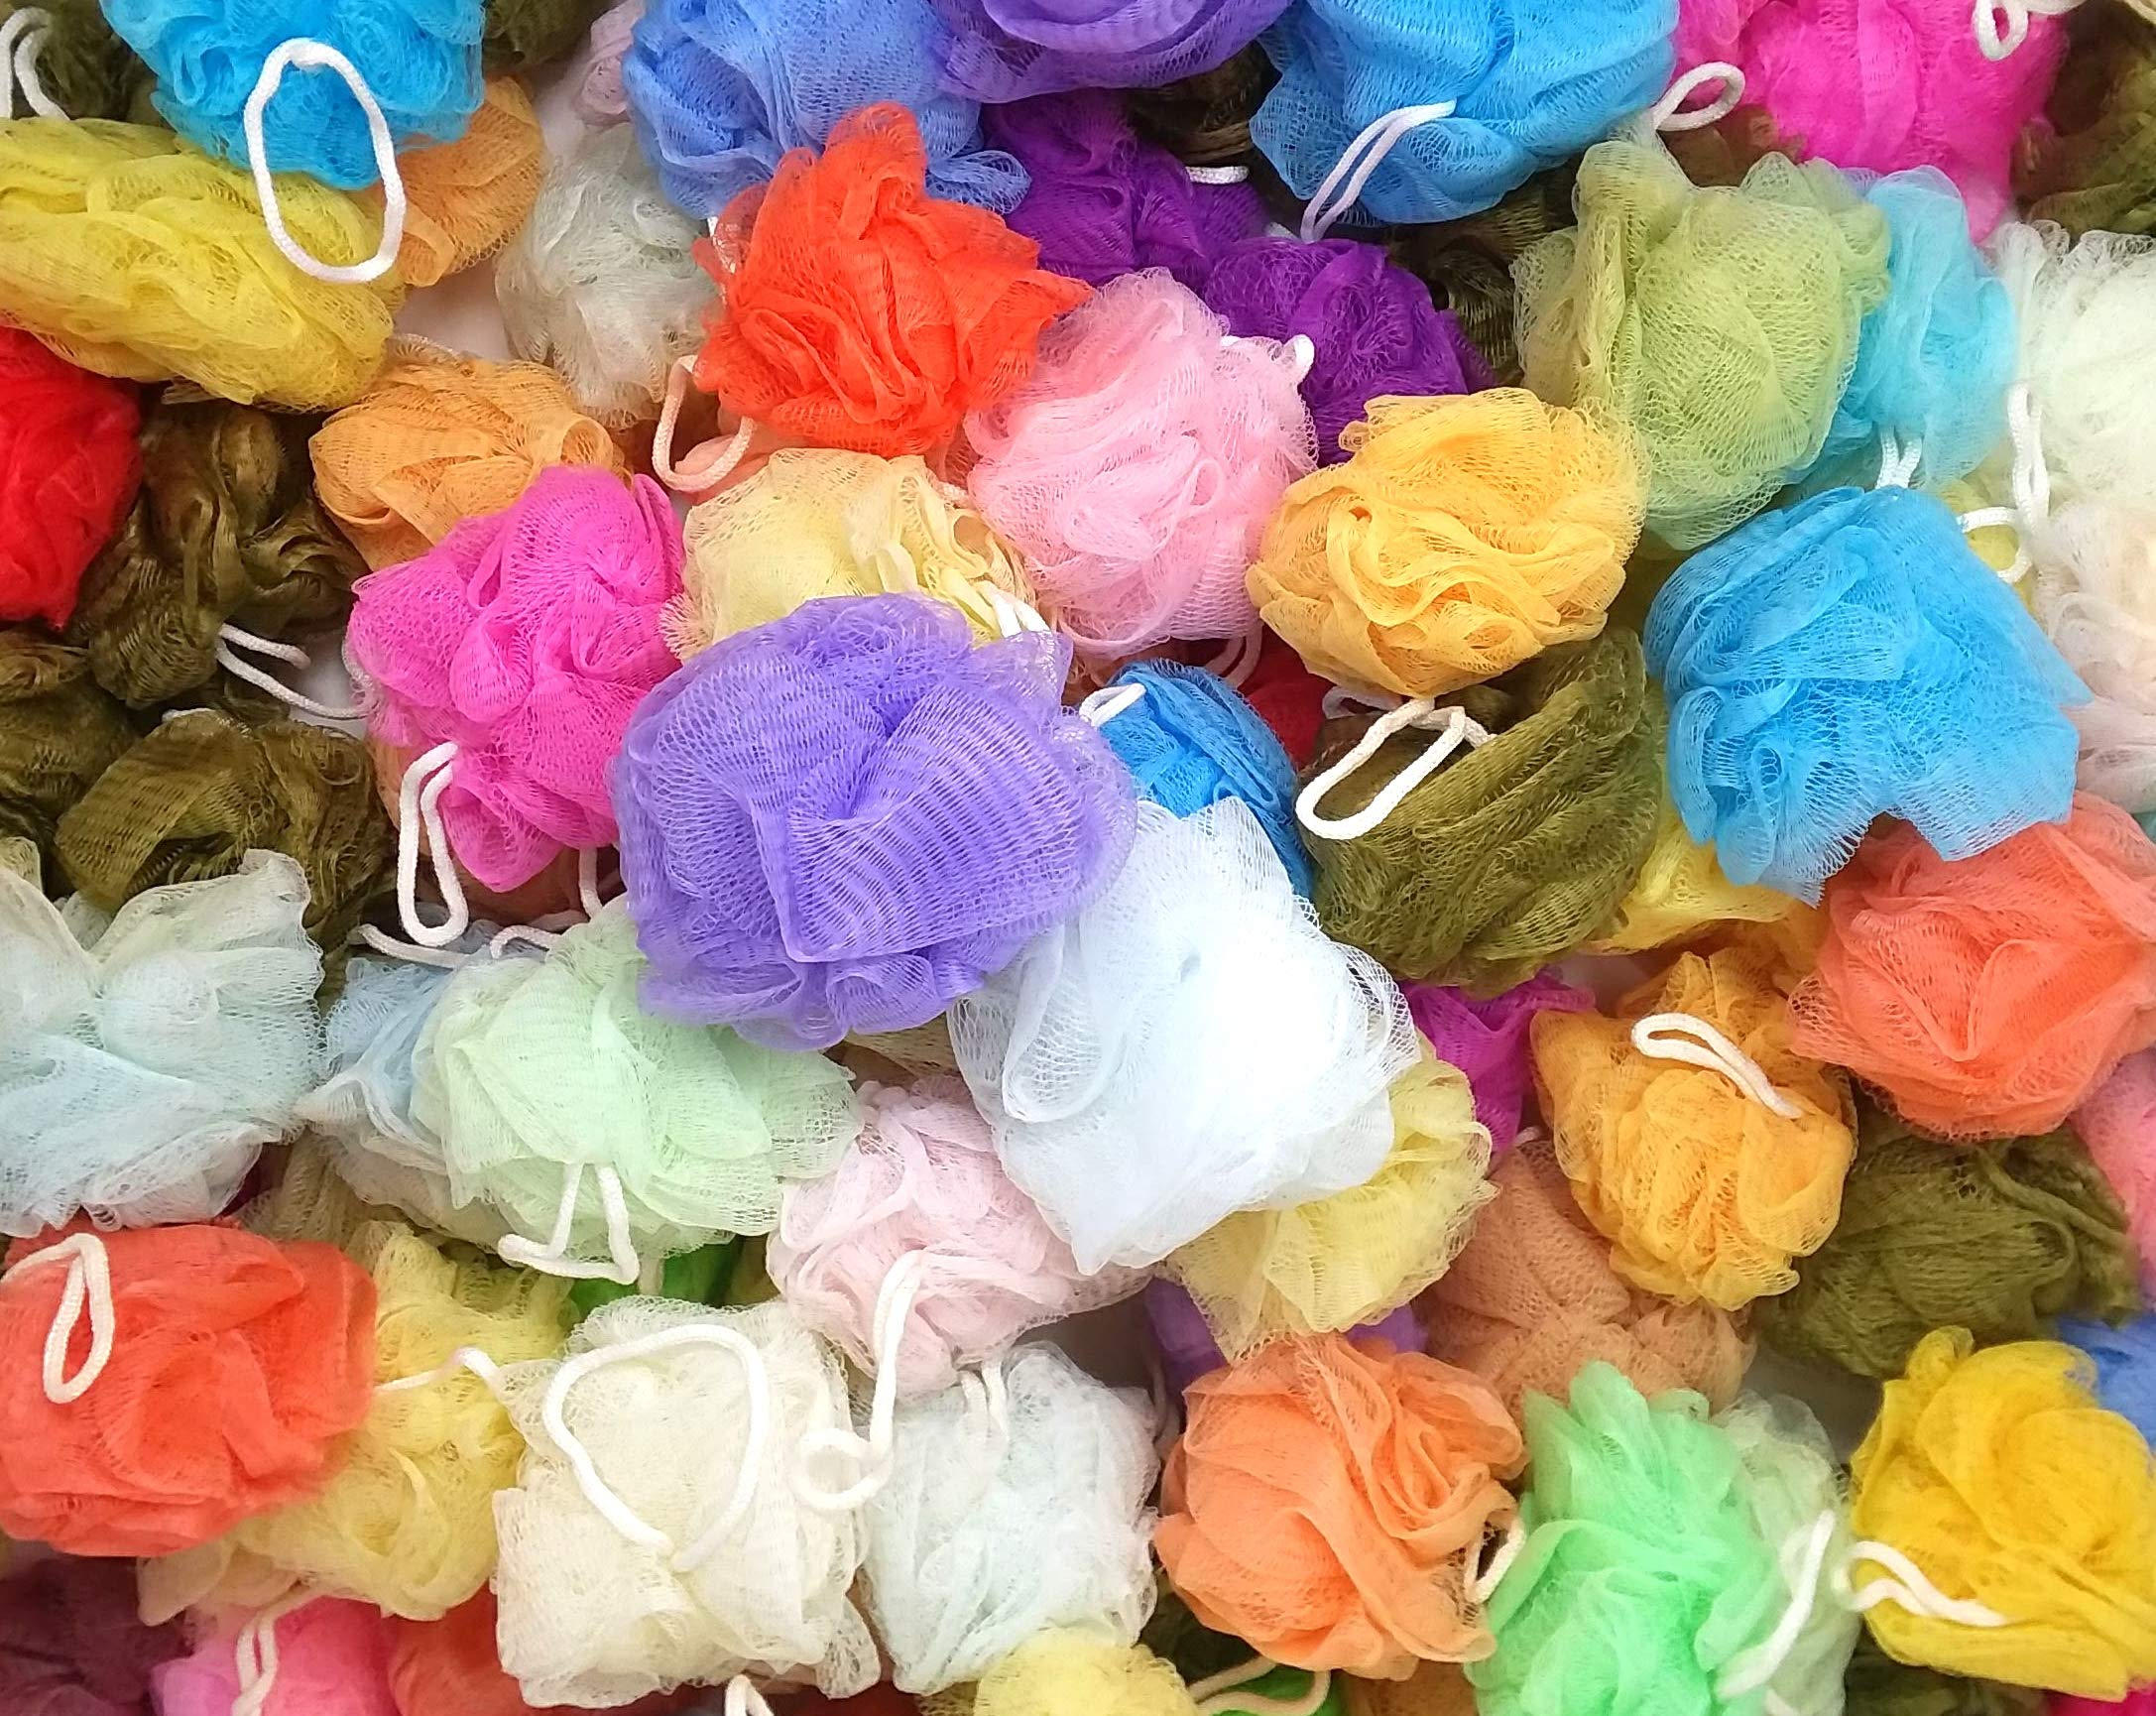 20 Bath or Shower Sponge Loofahs Pouf Large 4 inch Mesh Assorted Colors WHOLESALE BULK LOT by Chachlili (Image #1)